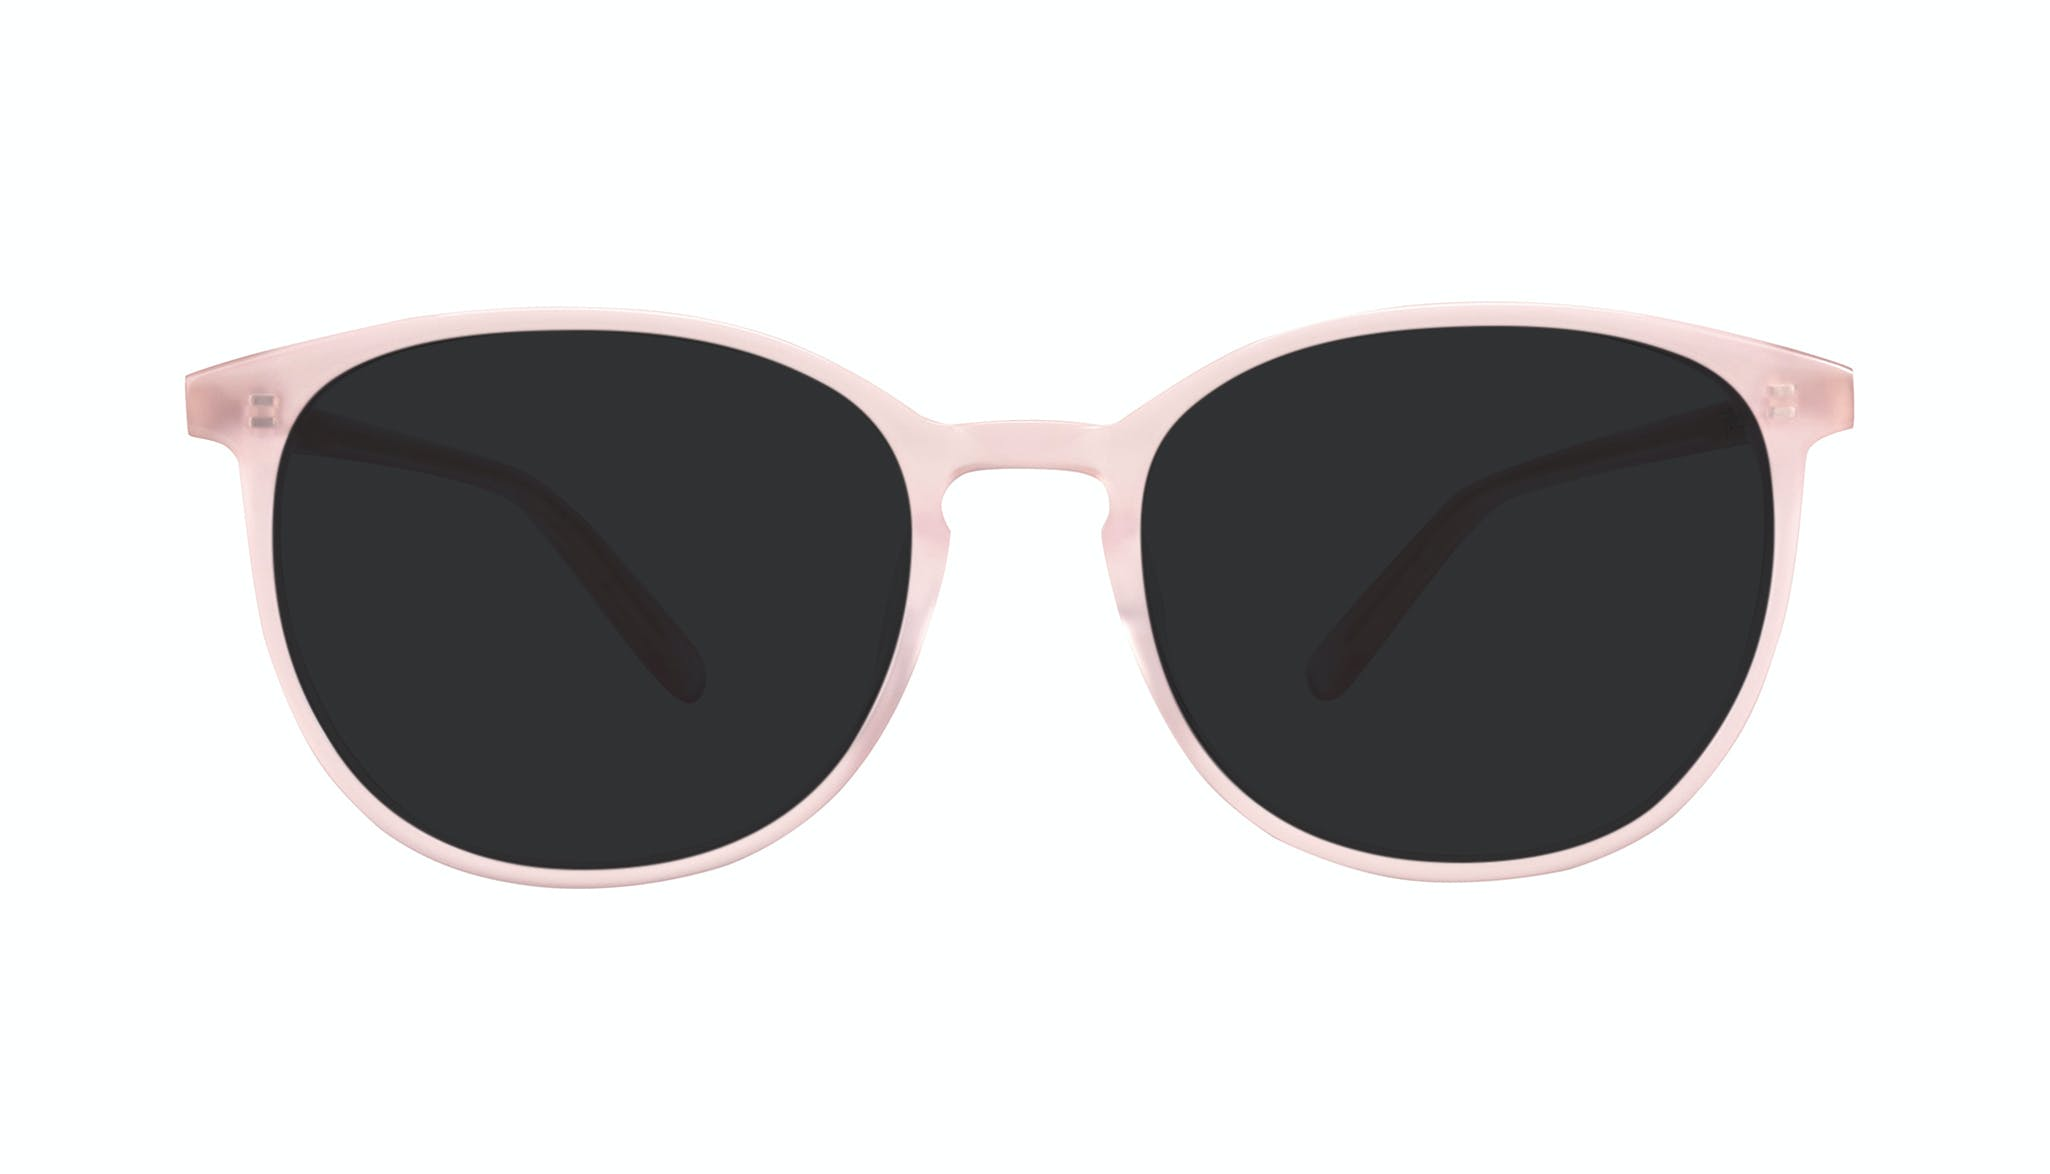 Affordable Fashion Glasses Round Sunglasses Women Femme Libre Mila Front